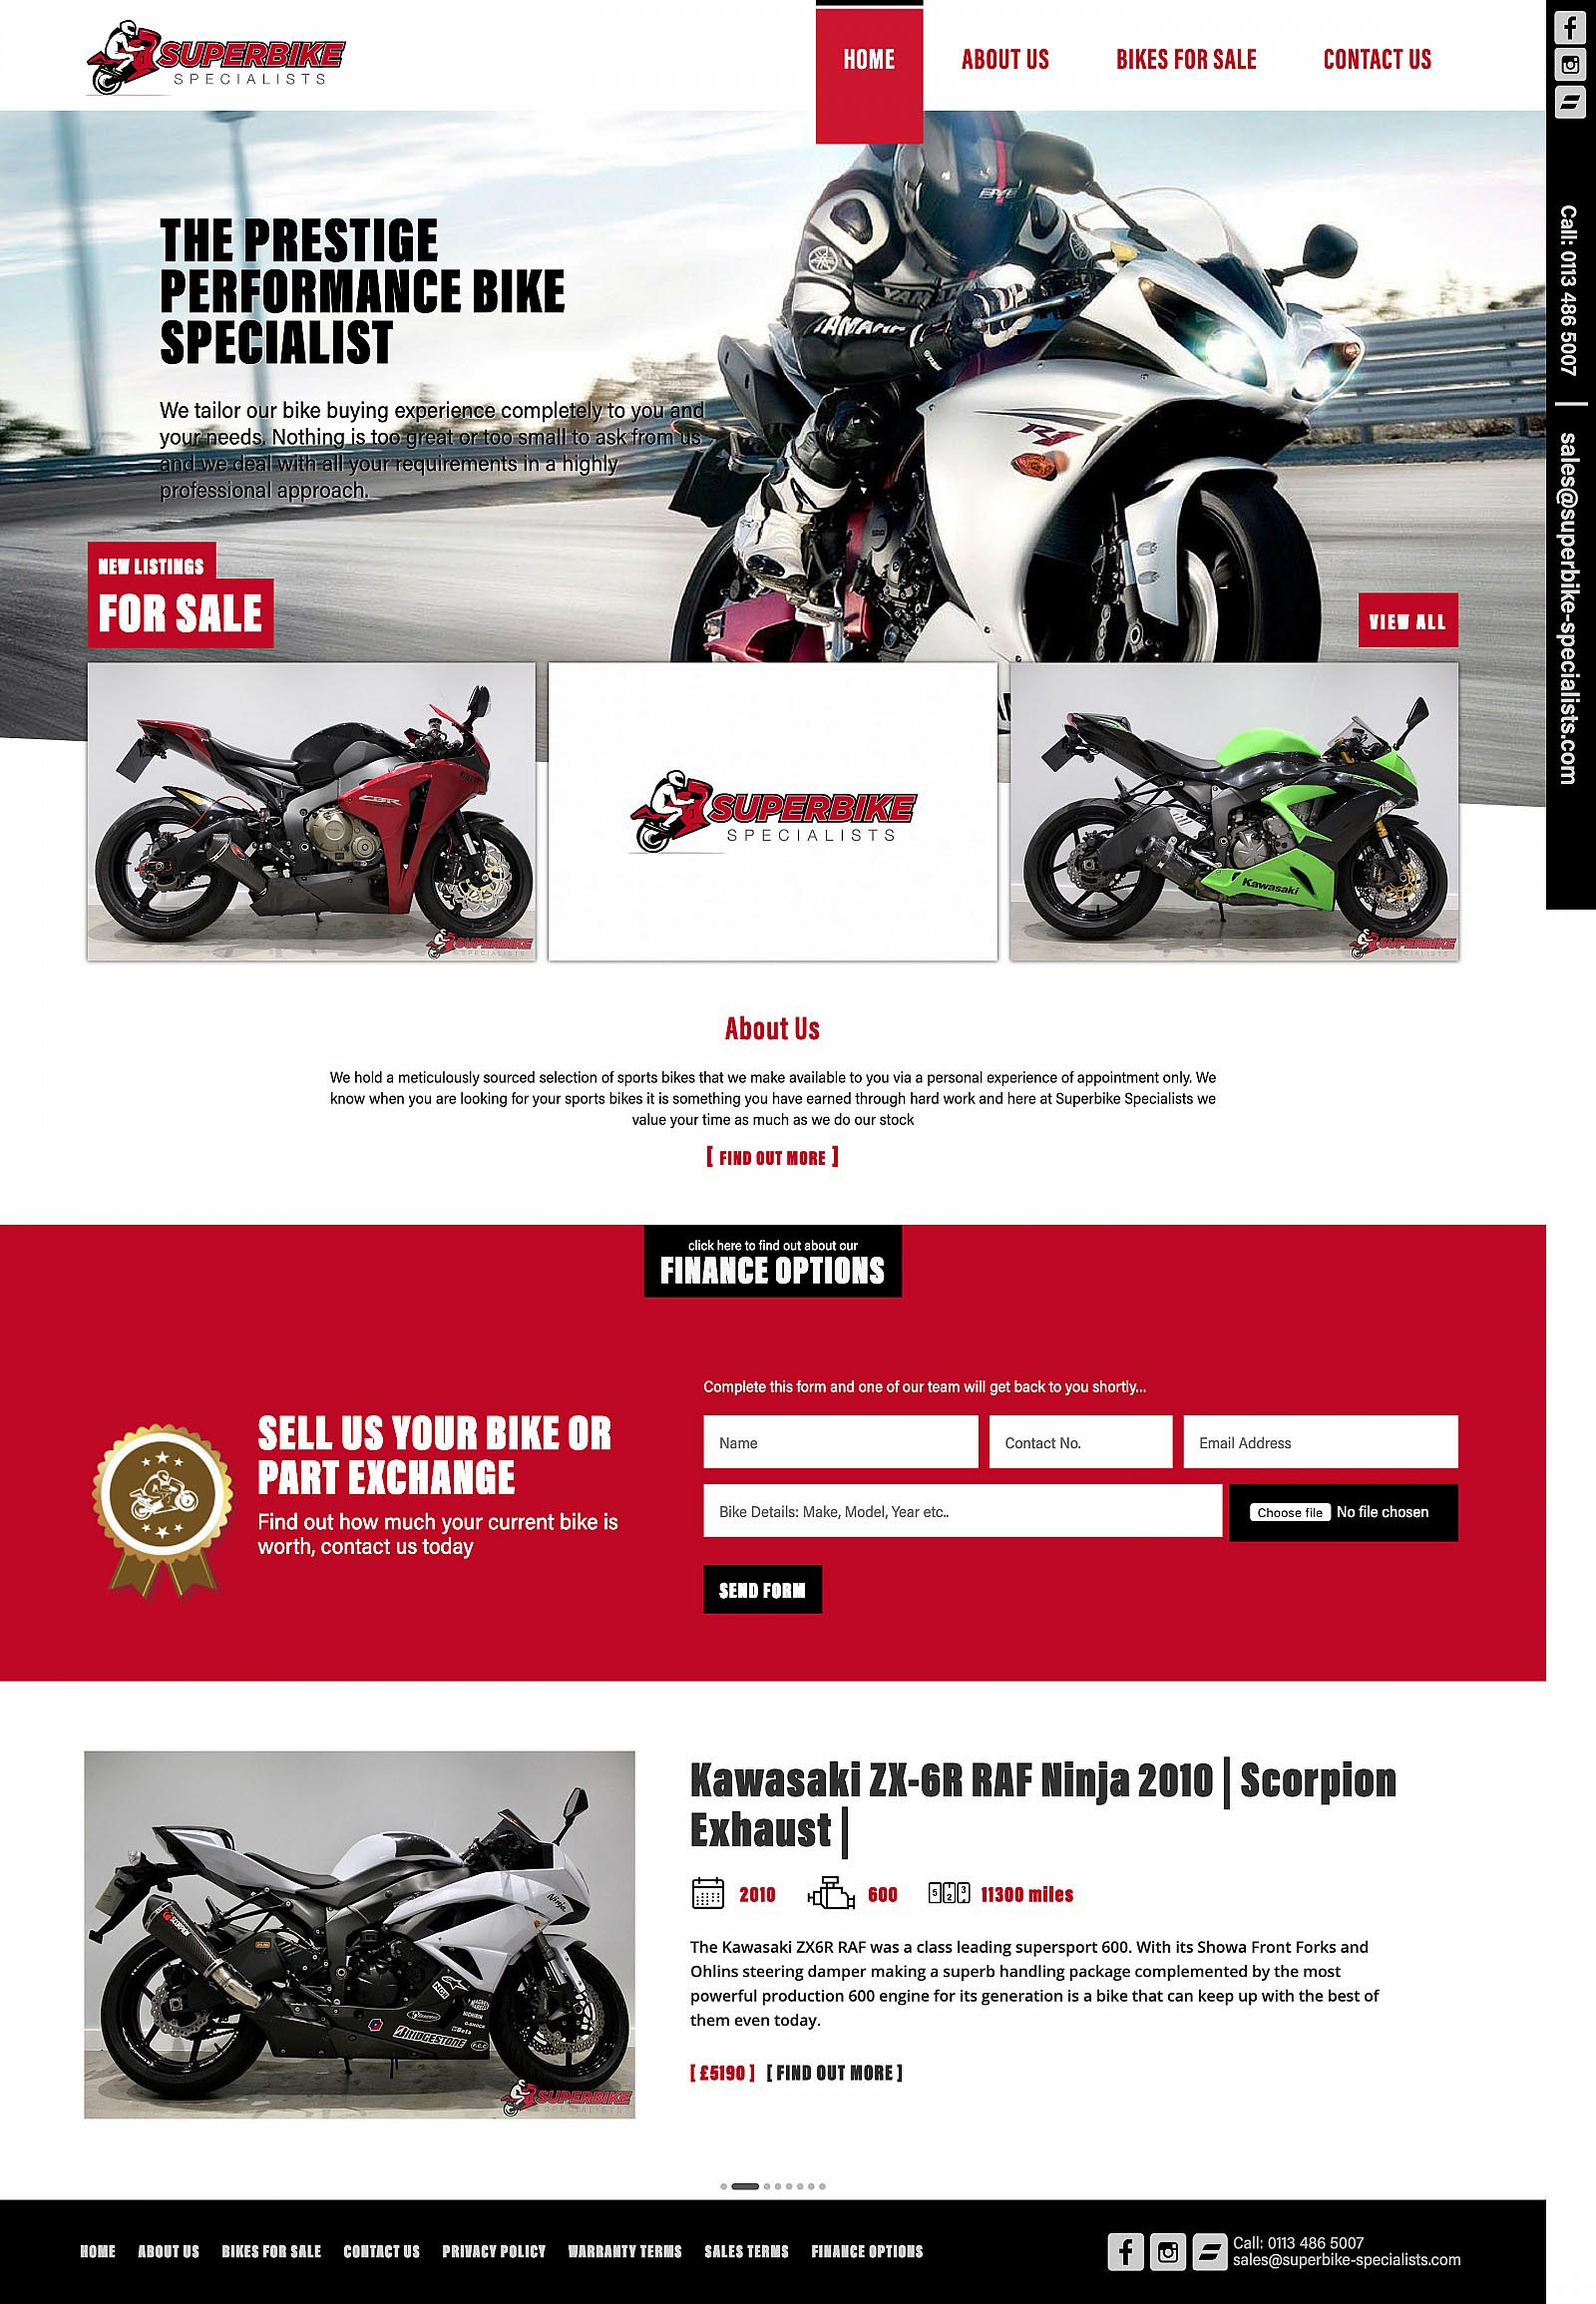 Superbike Specialists - Home Page